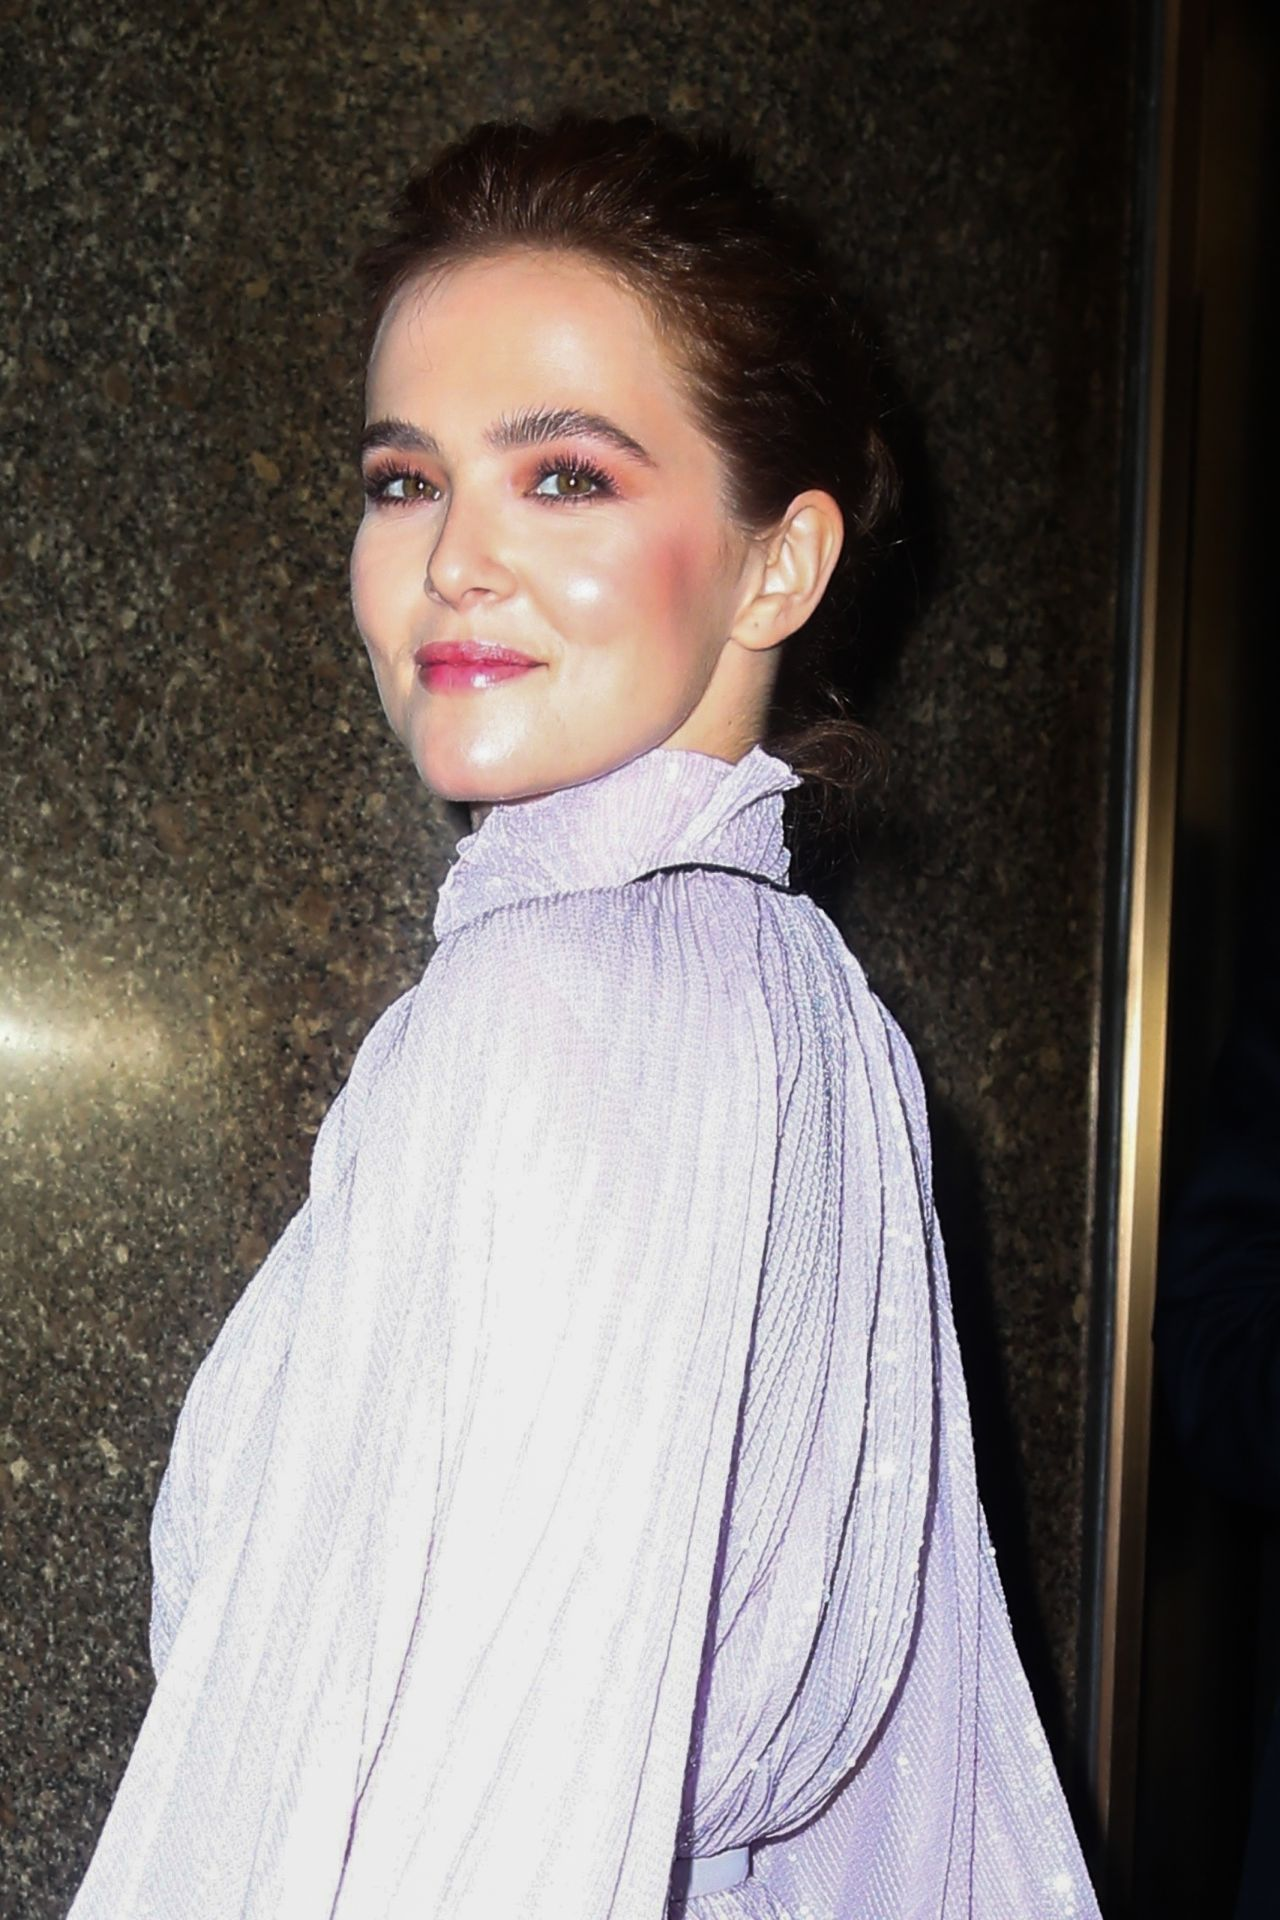 https://celebmafia.com/wp-content/uploads/2018/06/zoey-deutch-arriving-to-appear-on-today-show-in-new-york-06-13-2018-2.jpg